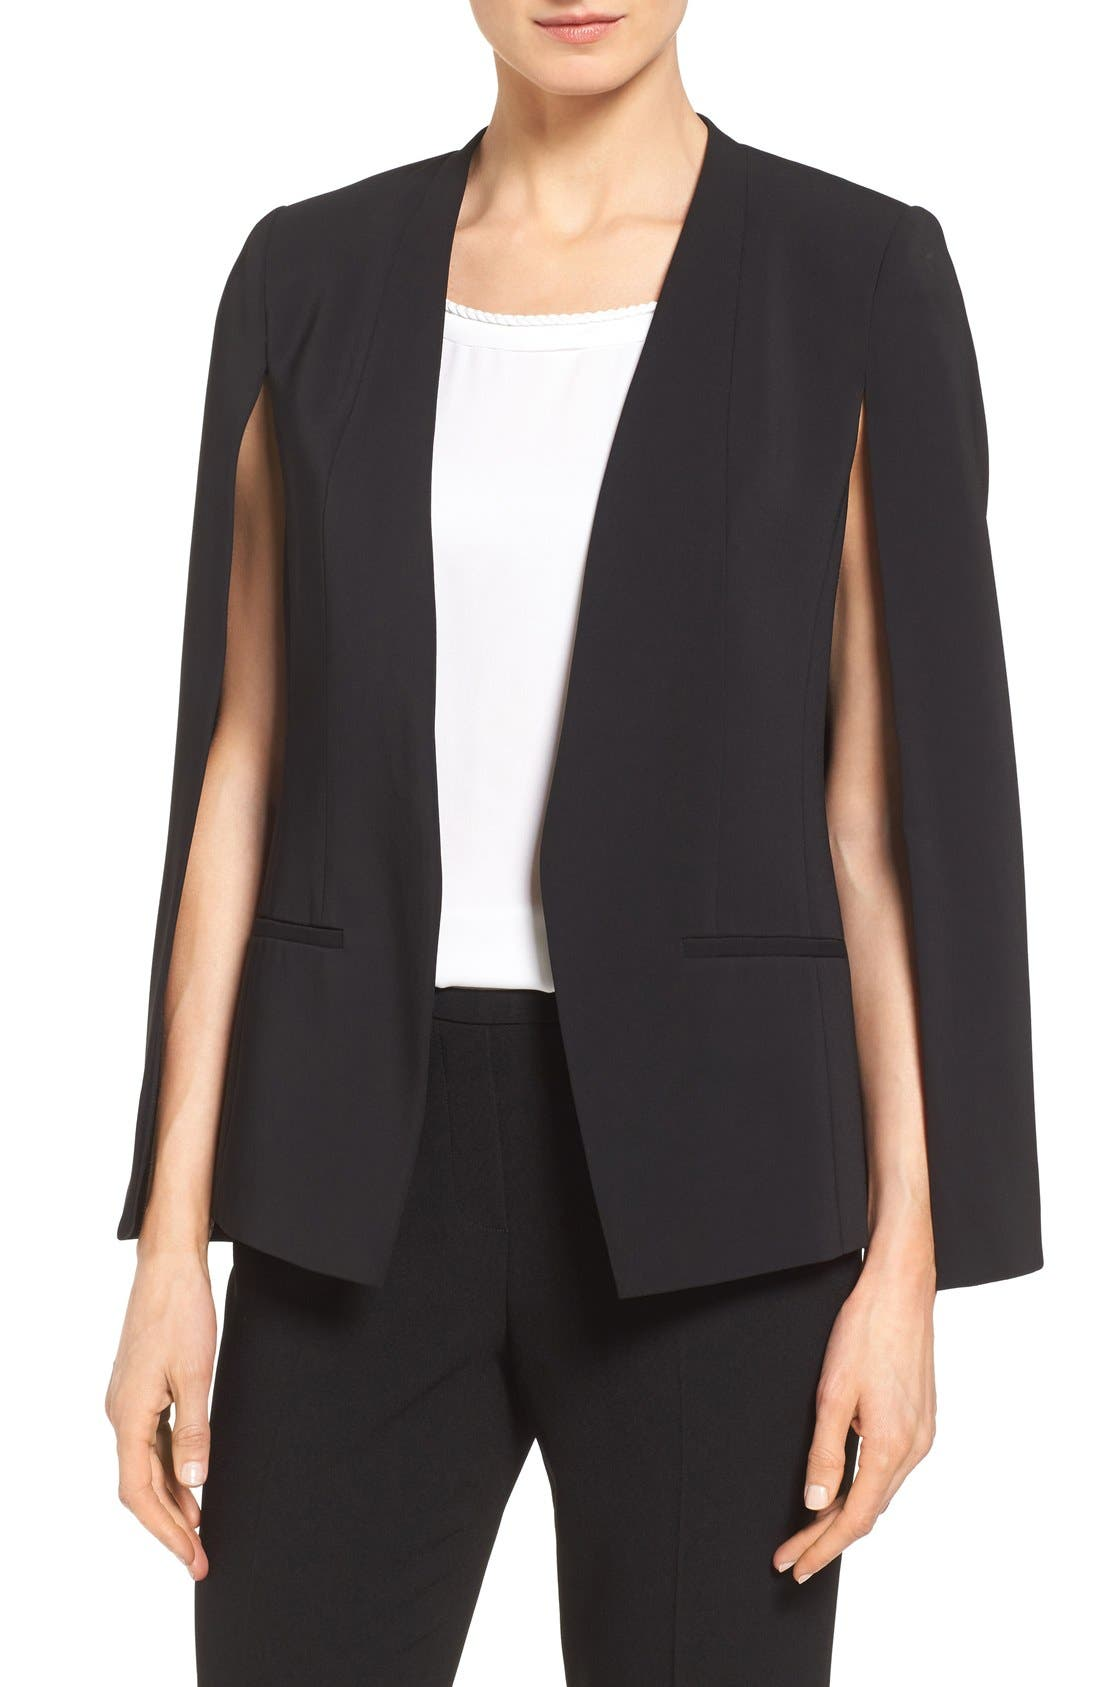 Alternate Image 1 Selected - Kobi Halperin 'Perri' Open Front Blazer with Cape Sleeves